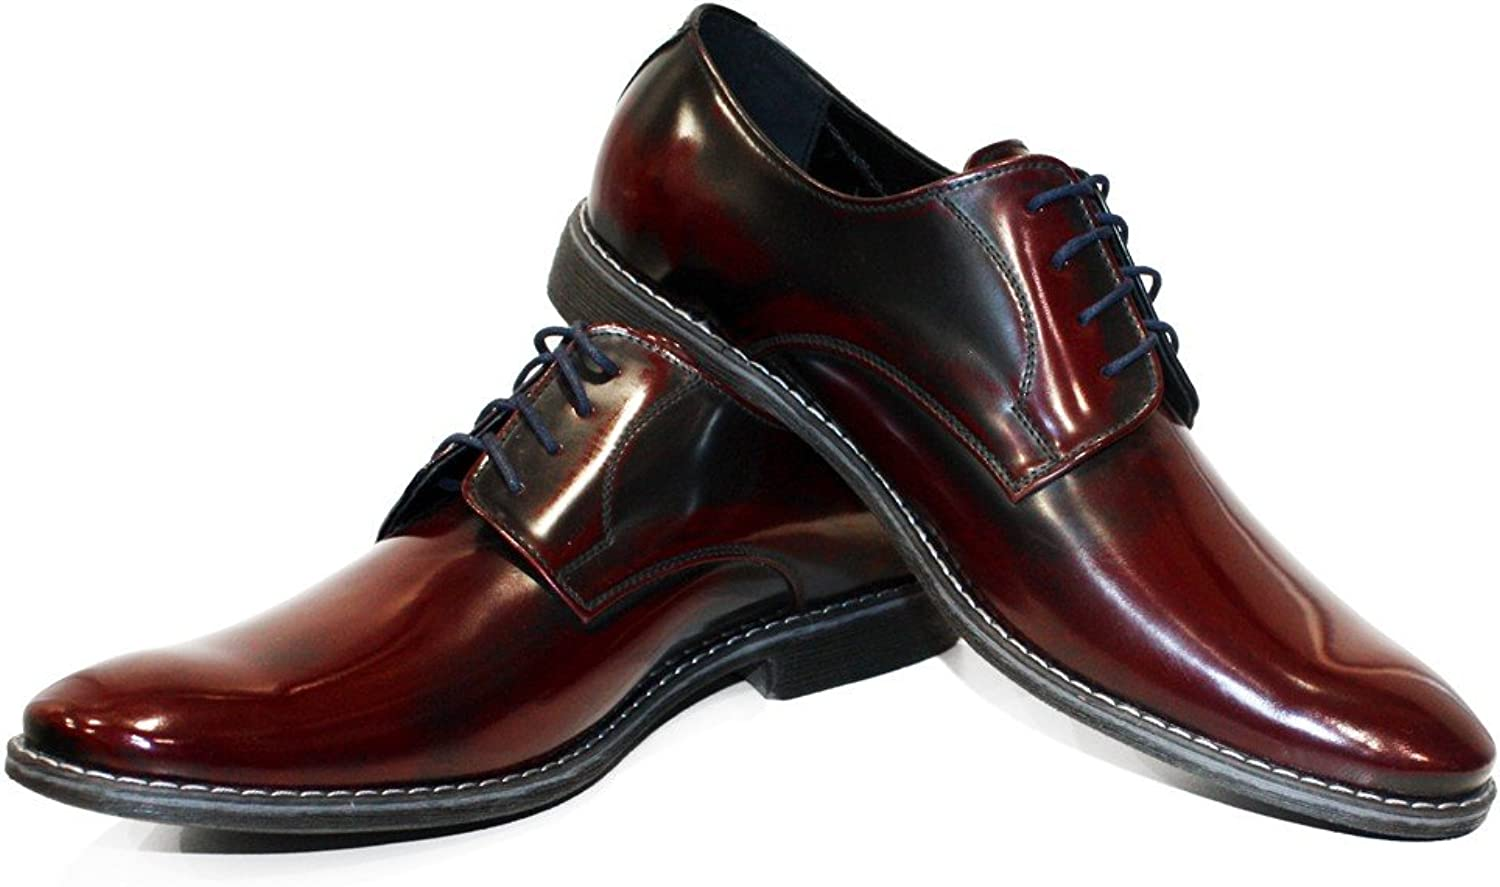 Modello Aborkado - Handmade Italian Leather Mens color Burgundy Oxfords Dress shoes - Cowhide Smooth Leather - Lace-Up